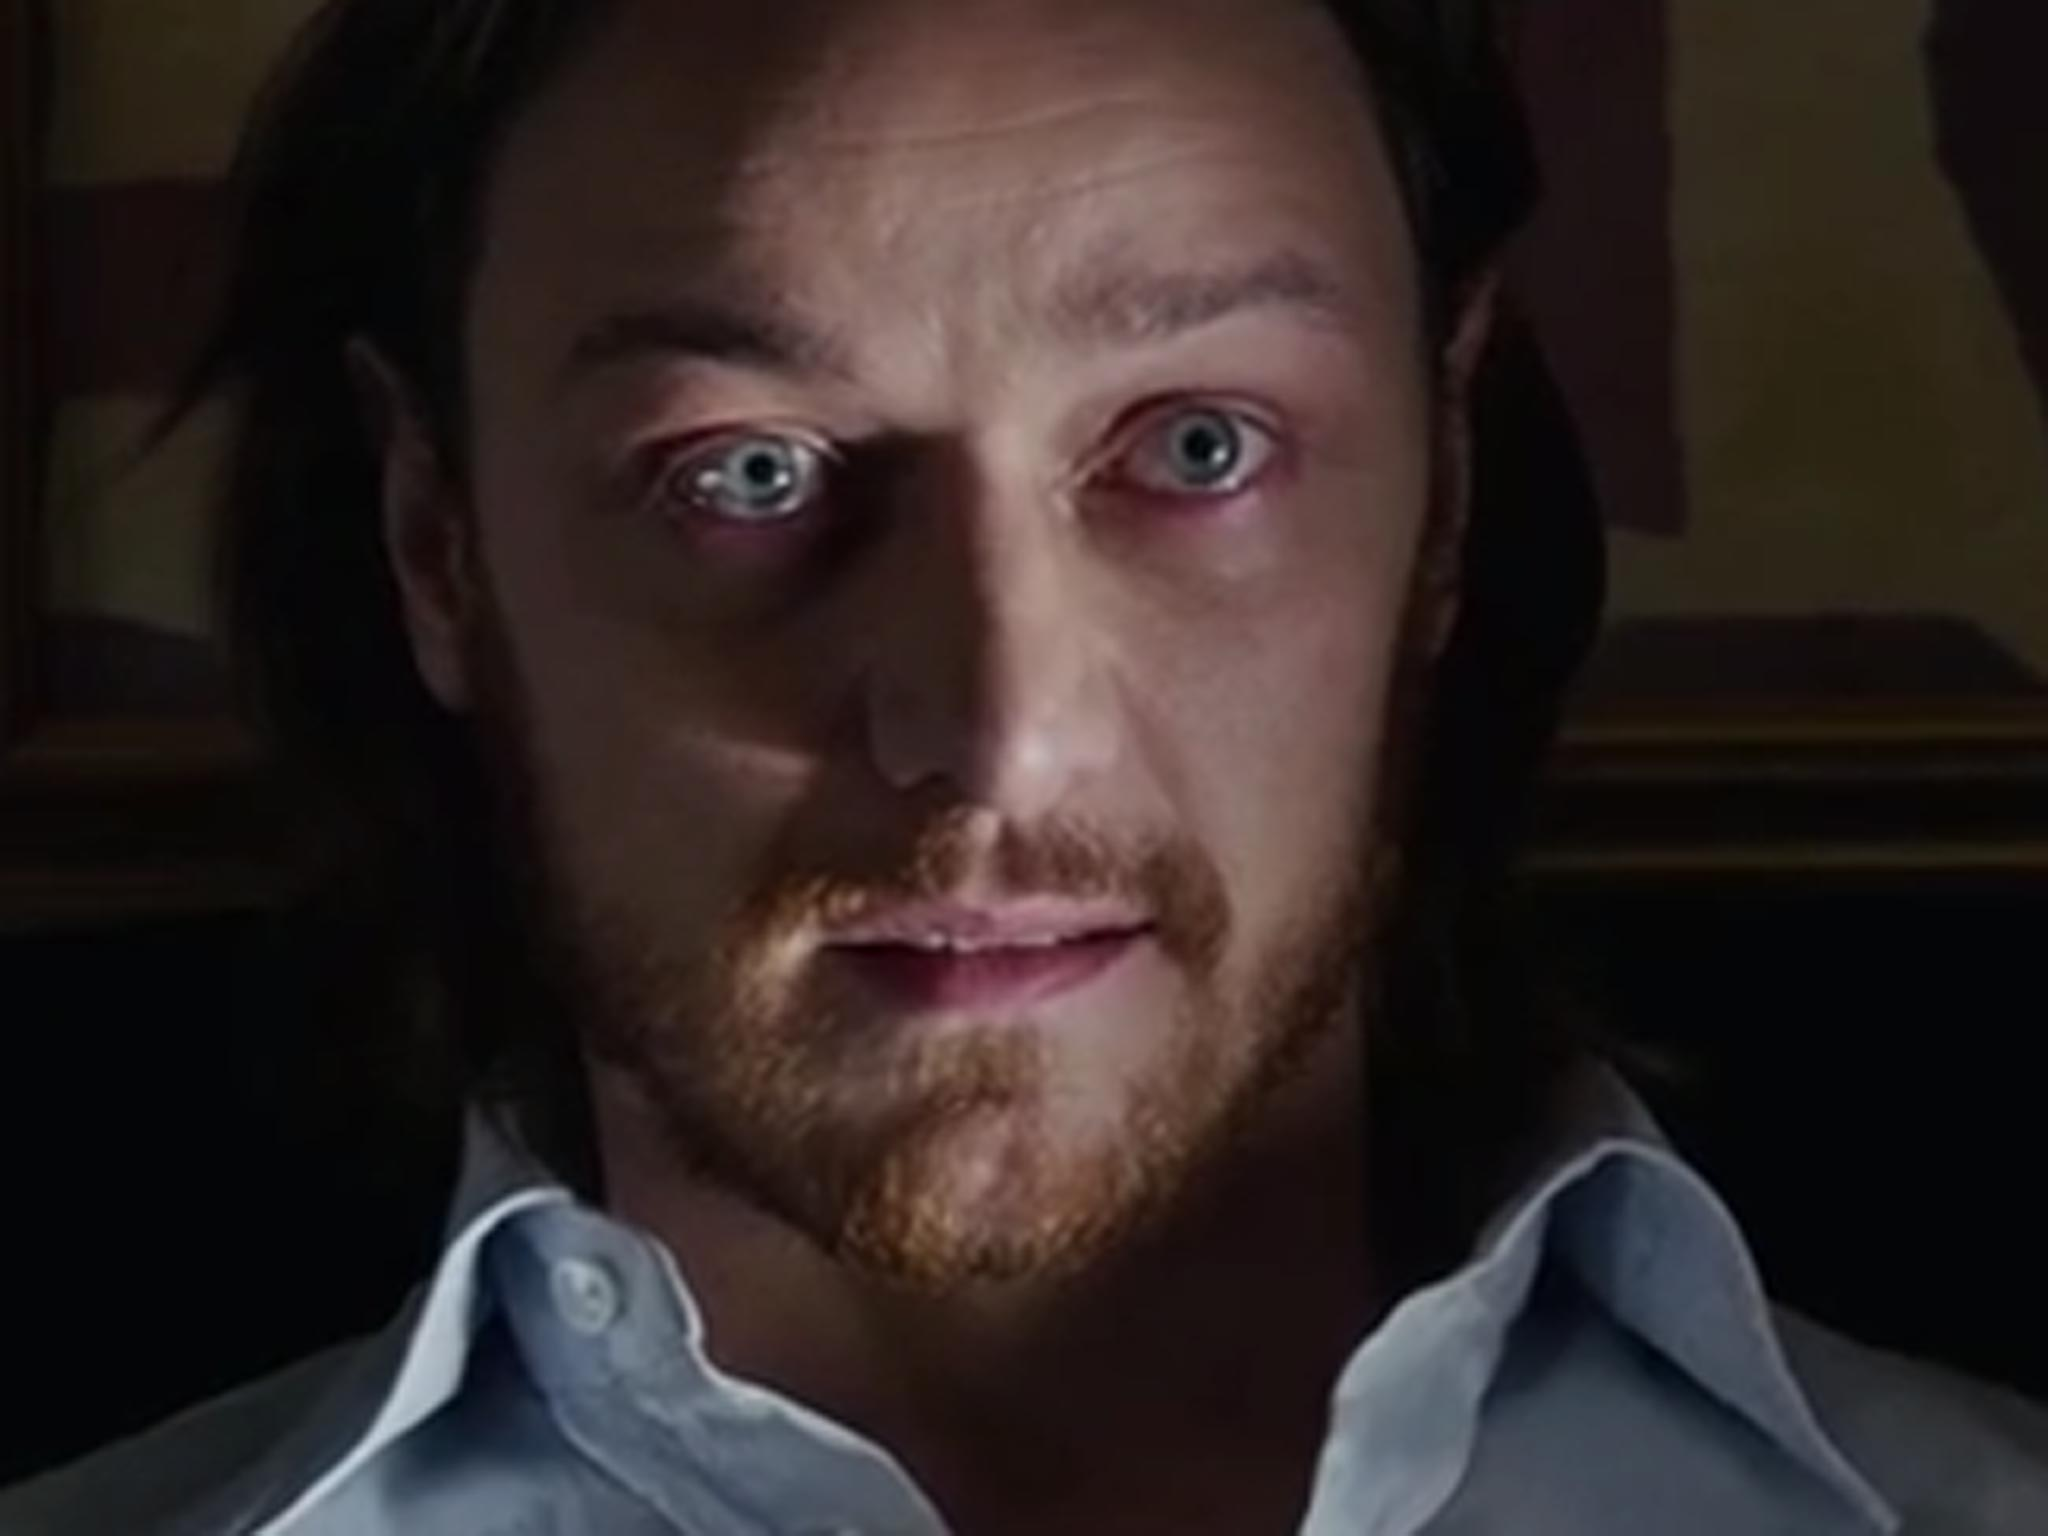 James McAvoy and Michael Fassbender clash in new X-Men: Days of Future Past clip - News - Films - The Independent